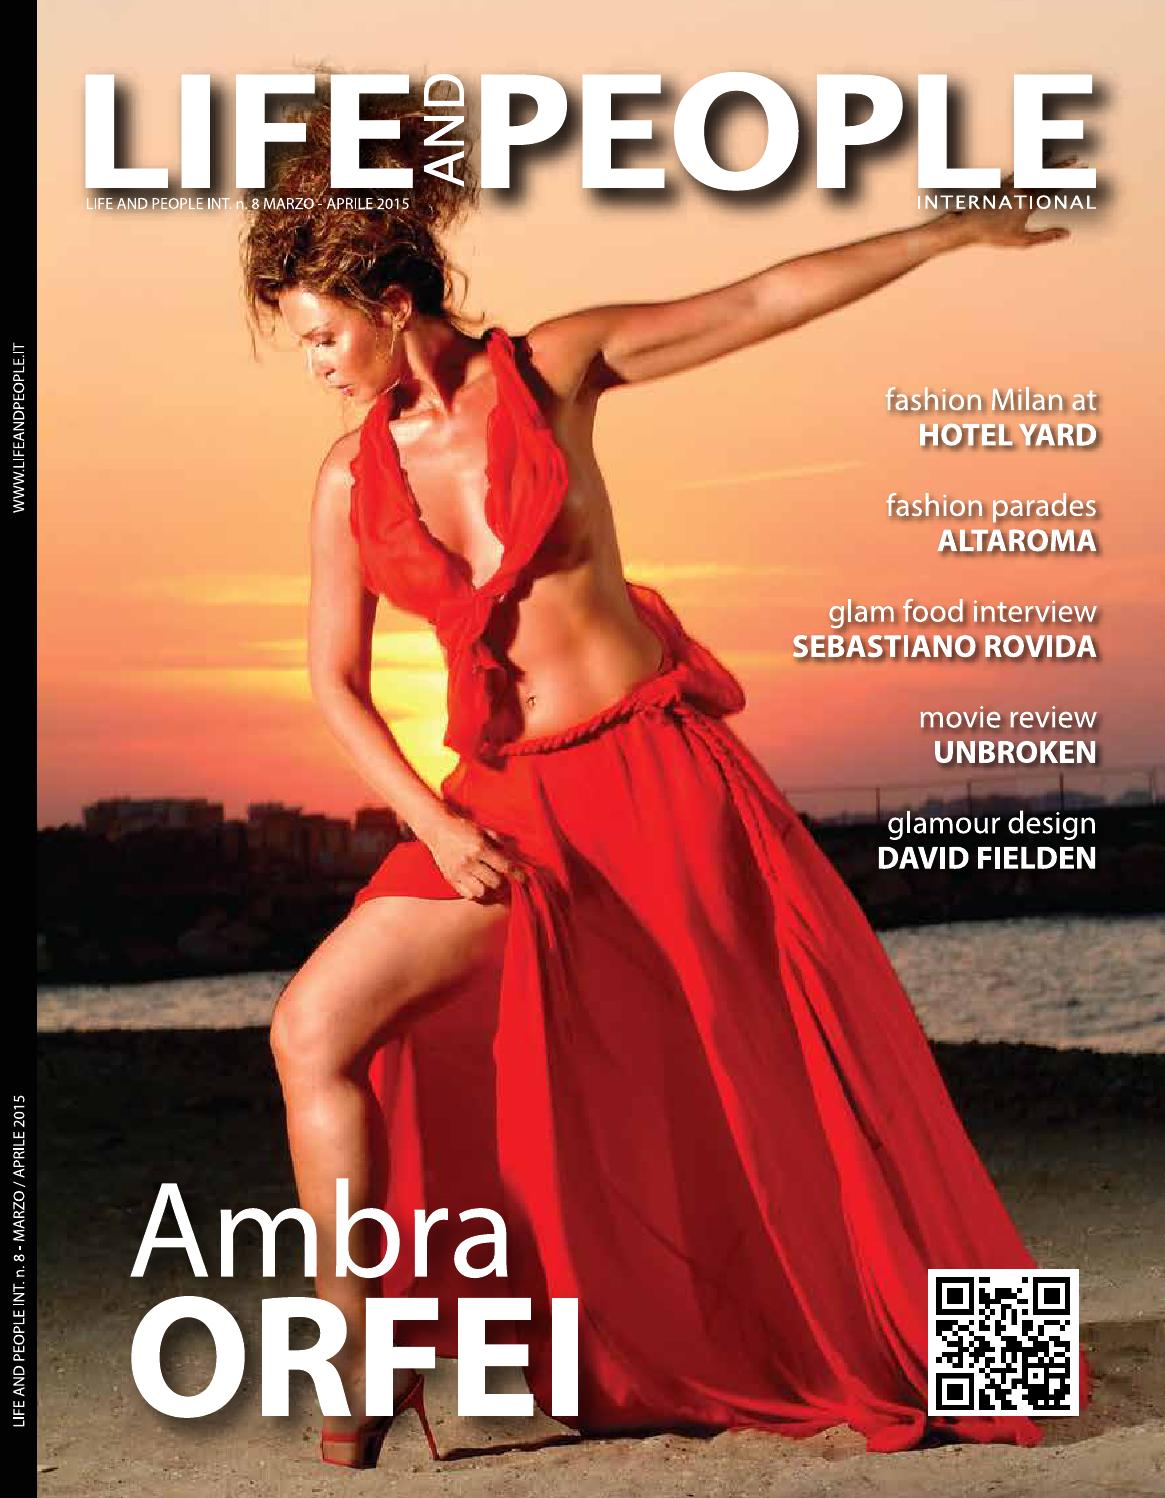 outlet store 52df1 18b20 Life and people - international n.8 - marzo aprile 2015 by Life People  Magazine - issuu